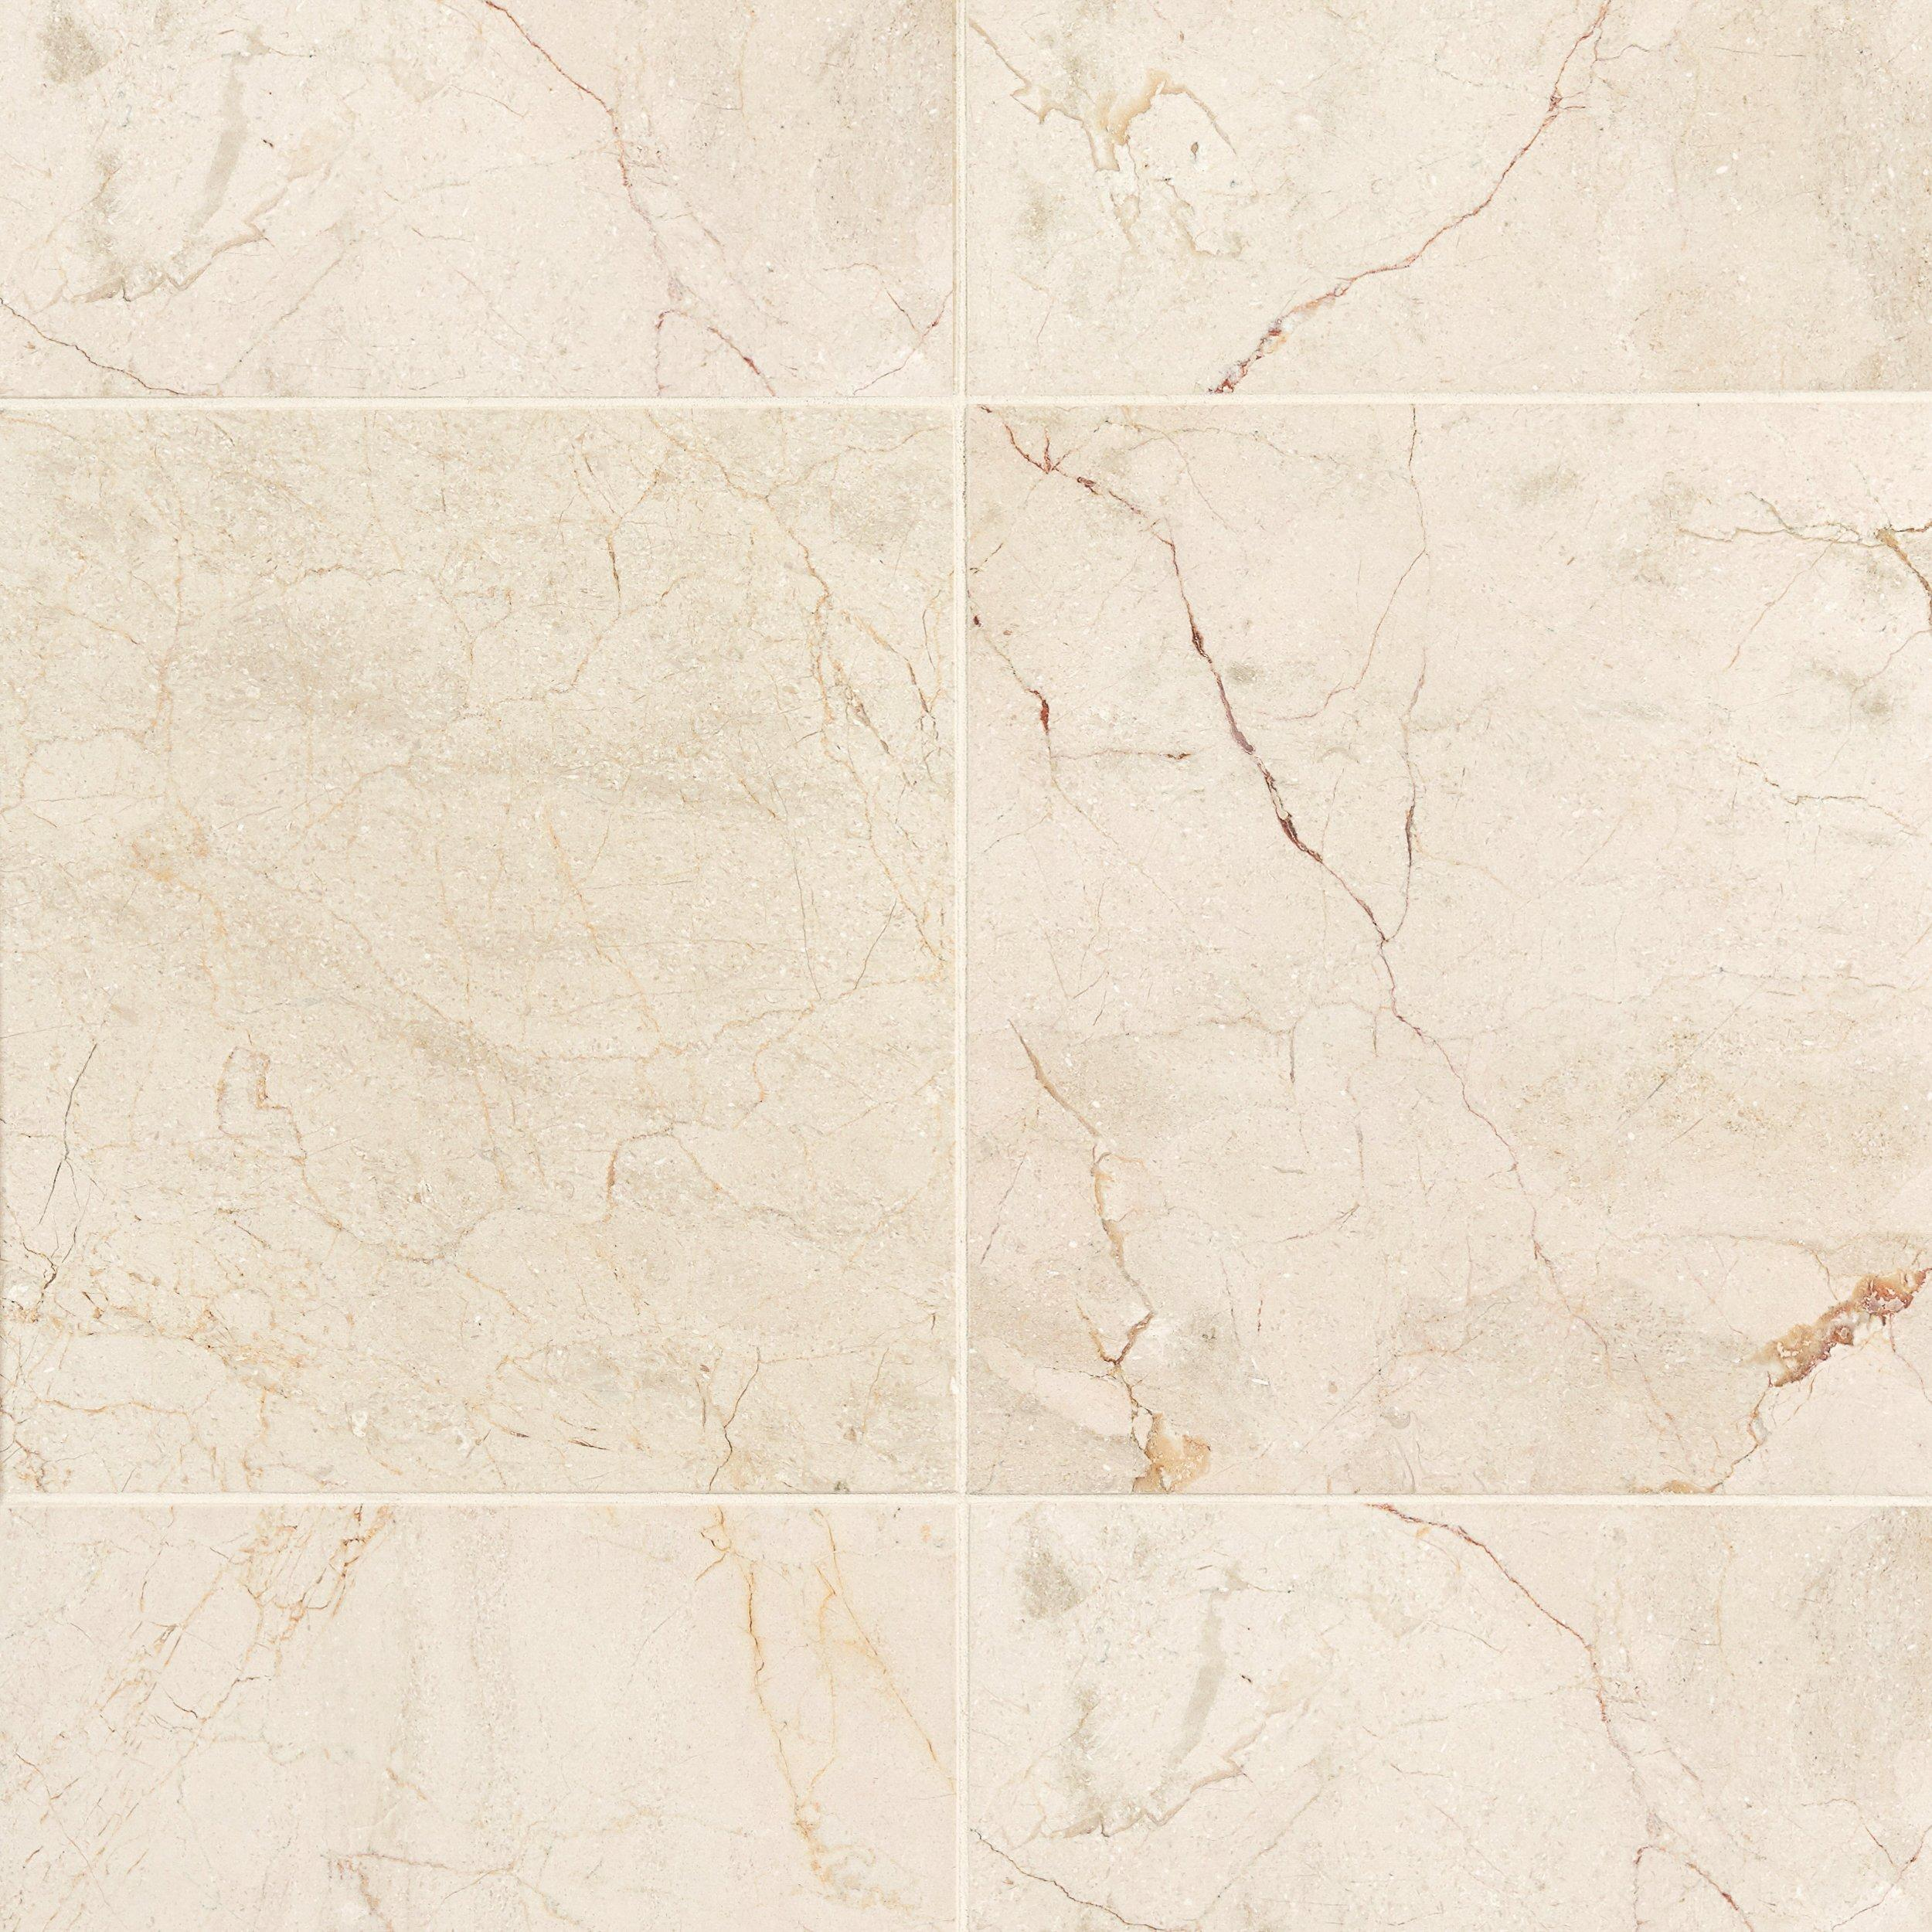 Crema marfil classic marble tile 18 x 18 921100528 floor and crema marfil classic marble tile 18 x 18 921100528 floor and decor dailygadgetfo Images